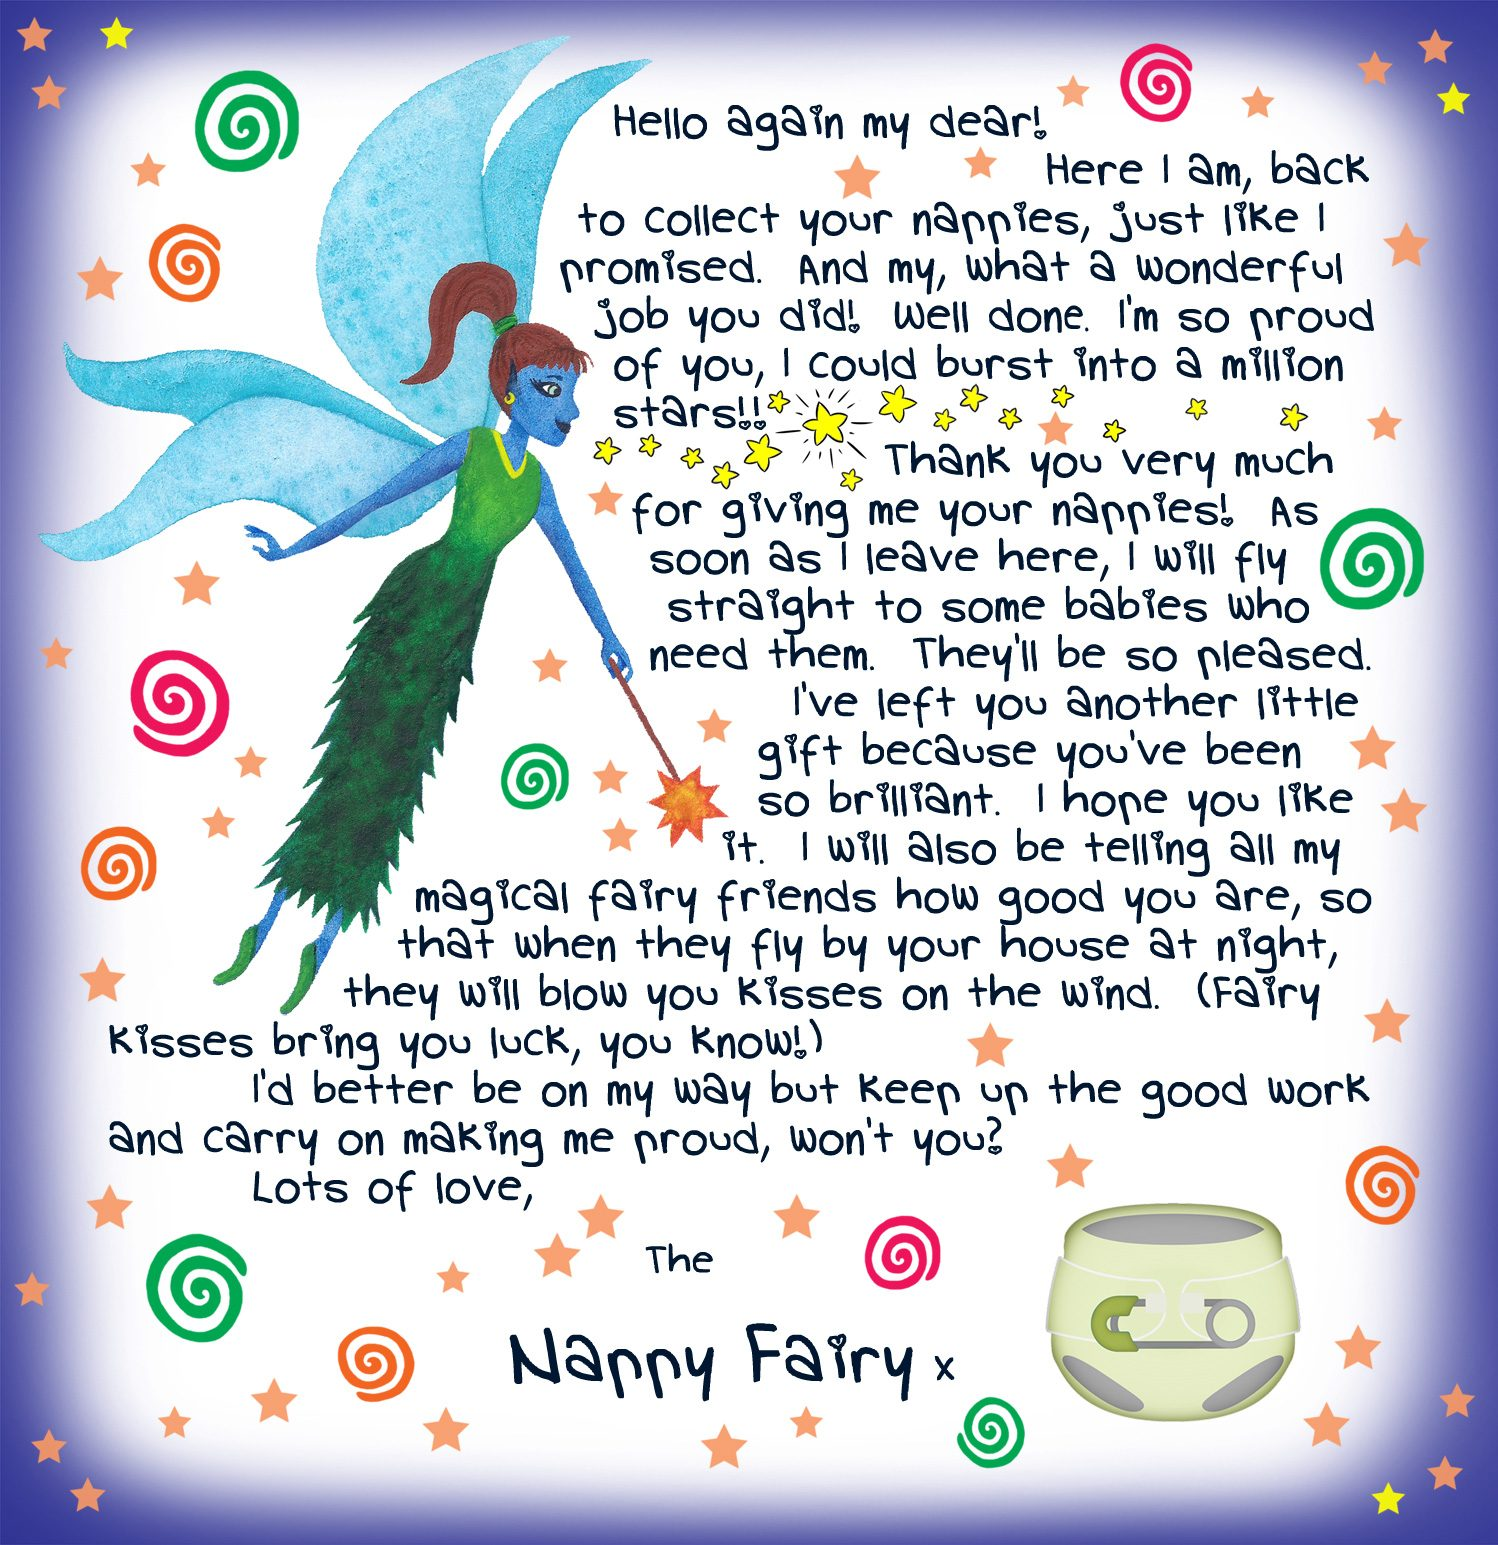 Second letter from the Nappy Fairy, free to print for your child.